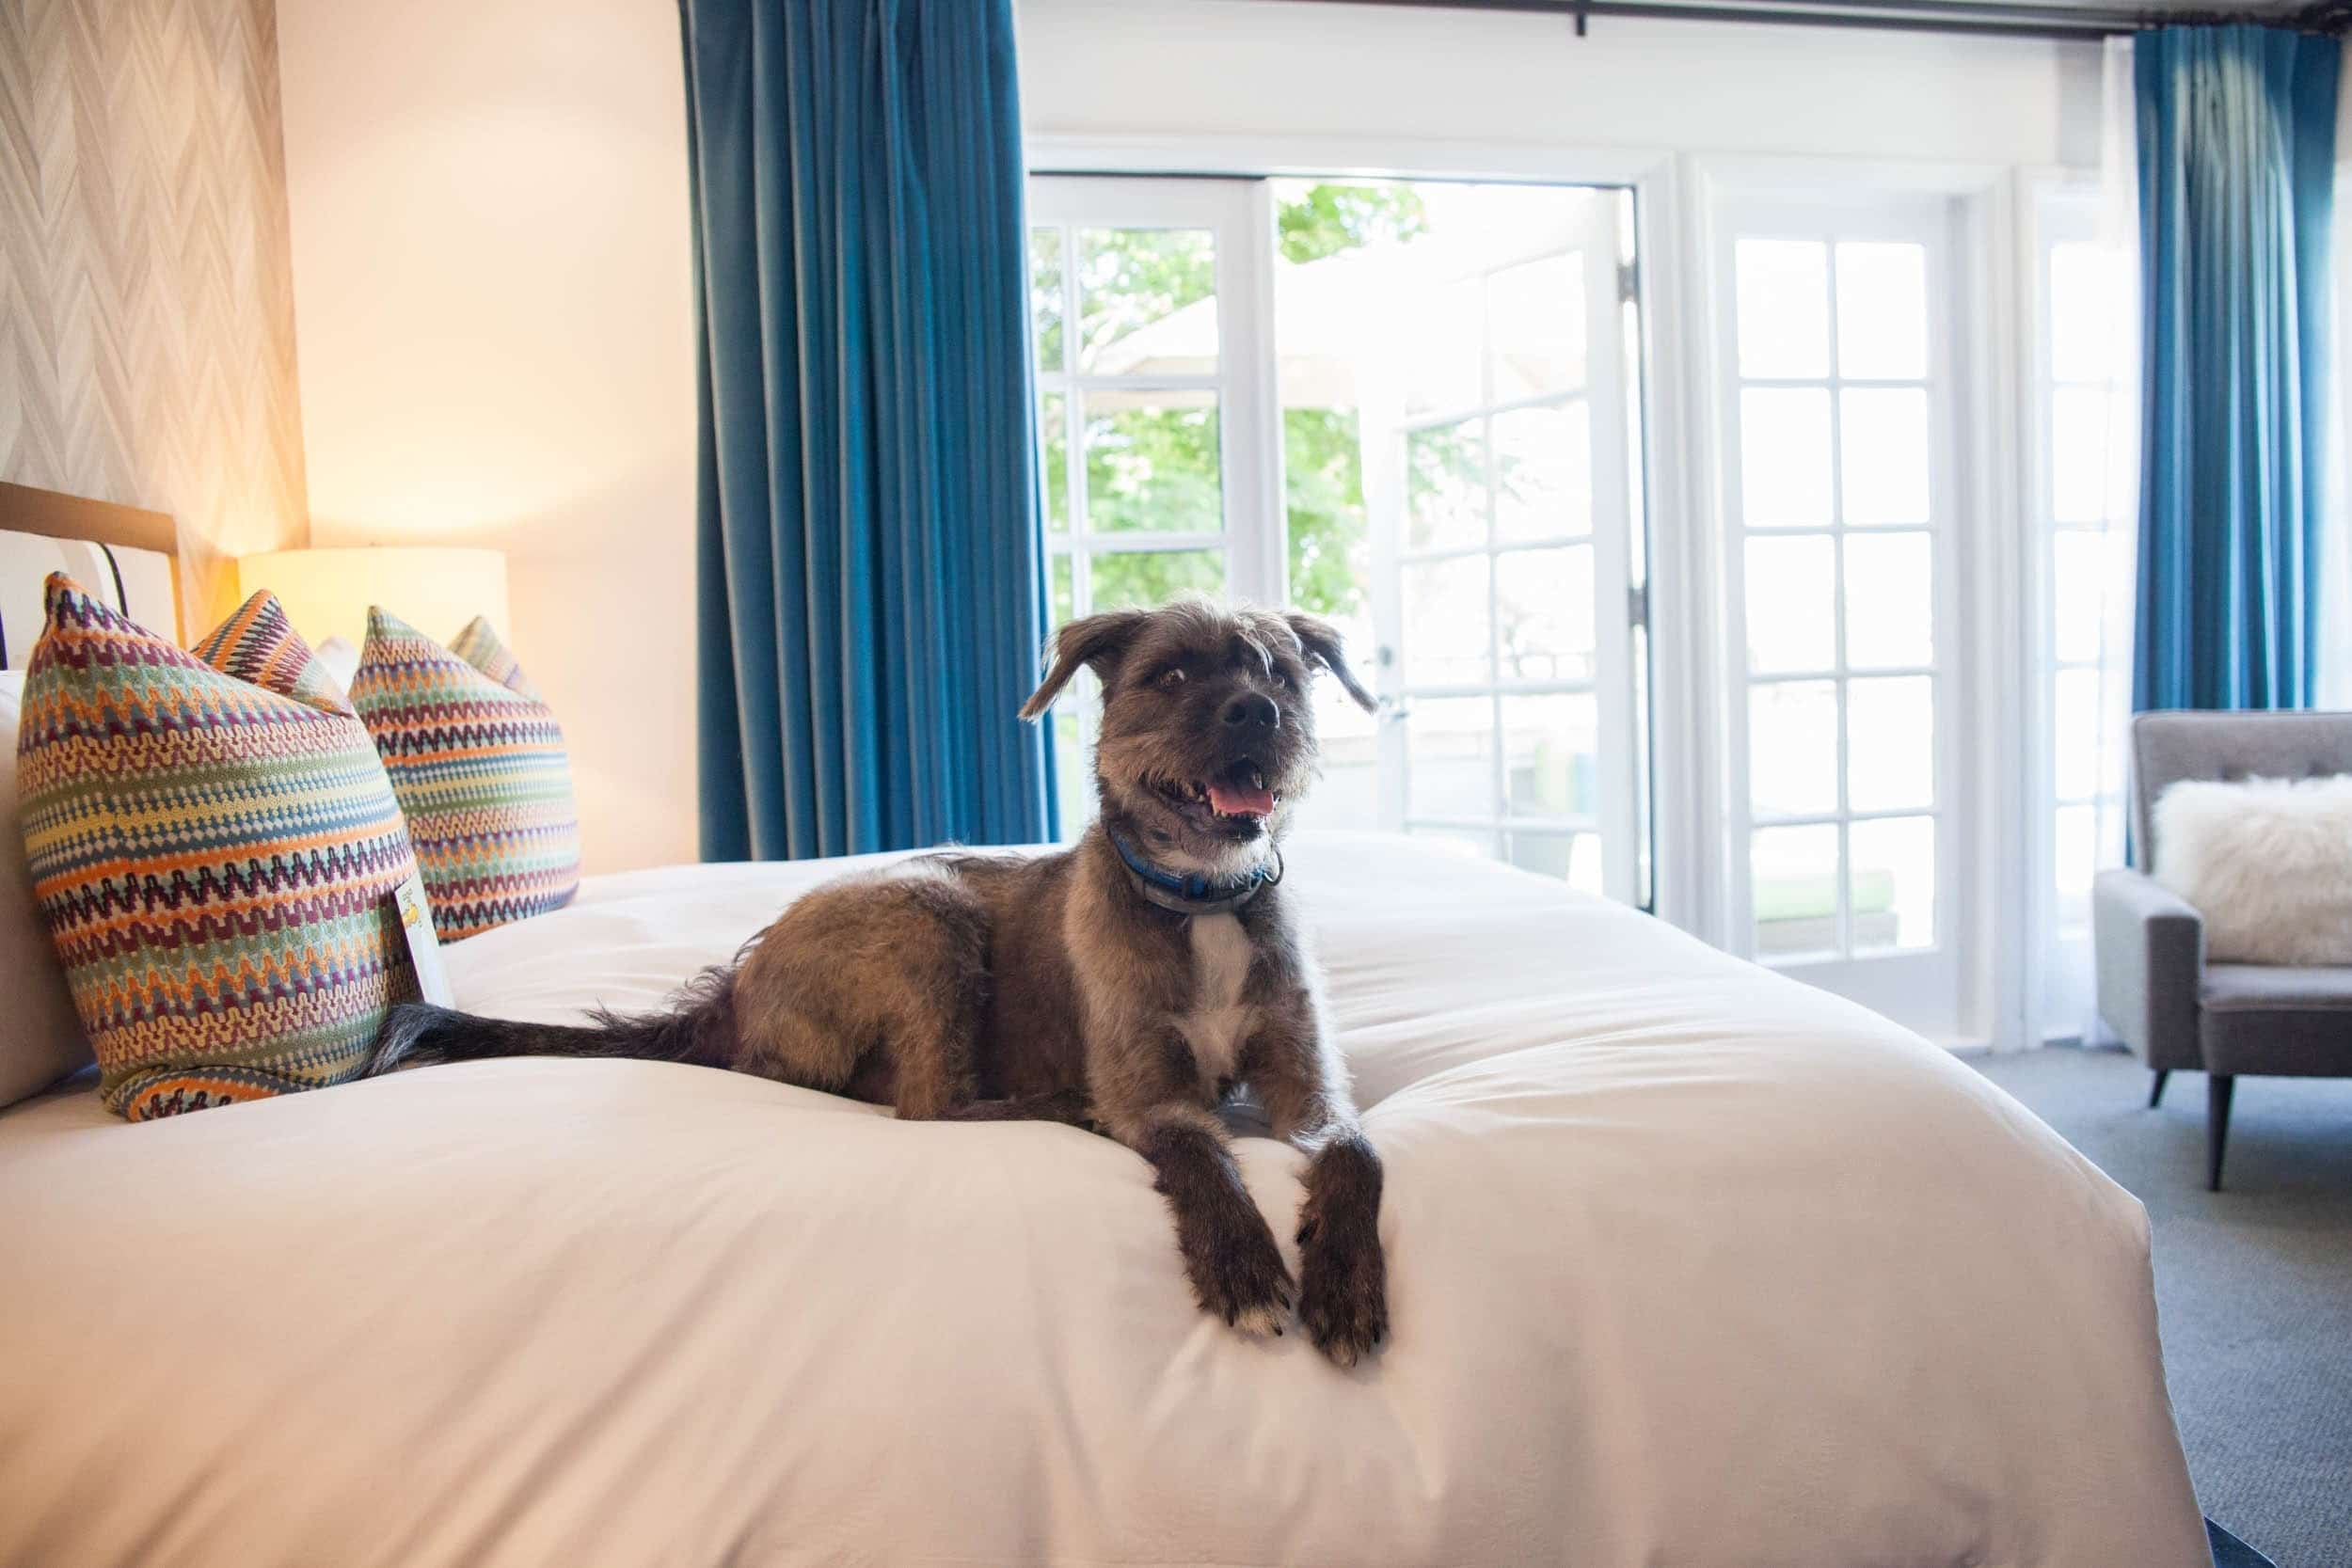 A brown terrier dog rests on the hotel bed.